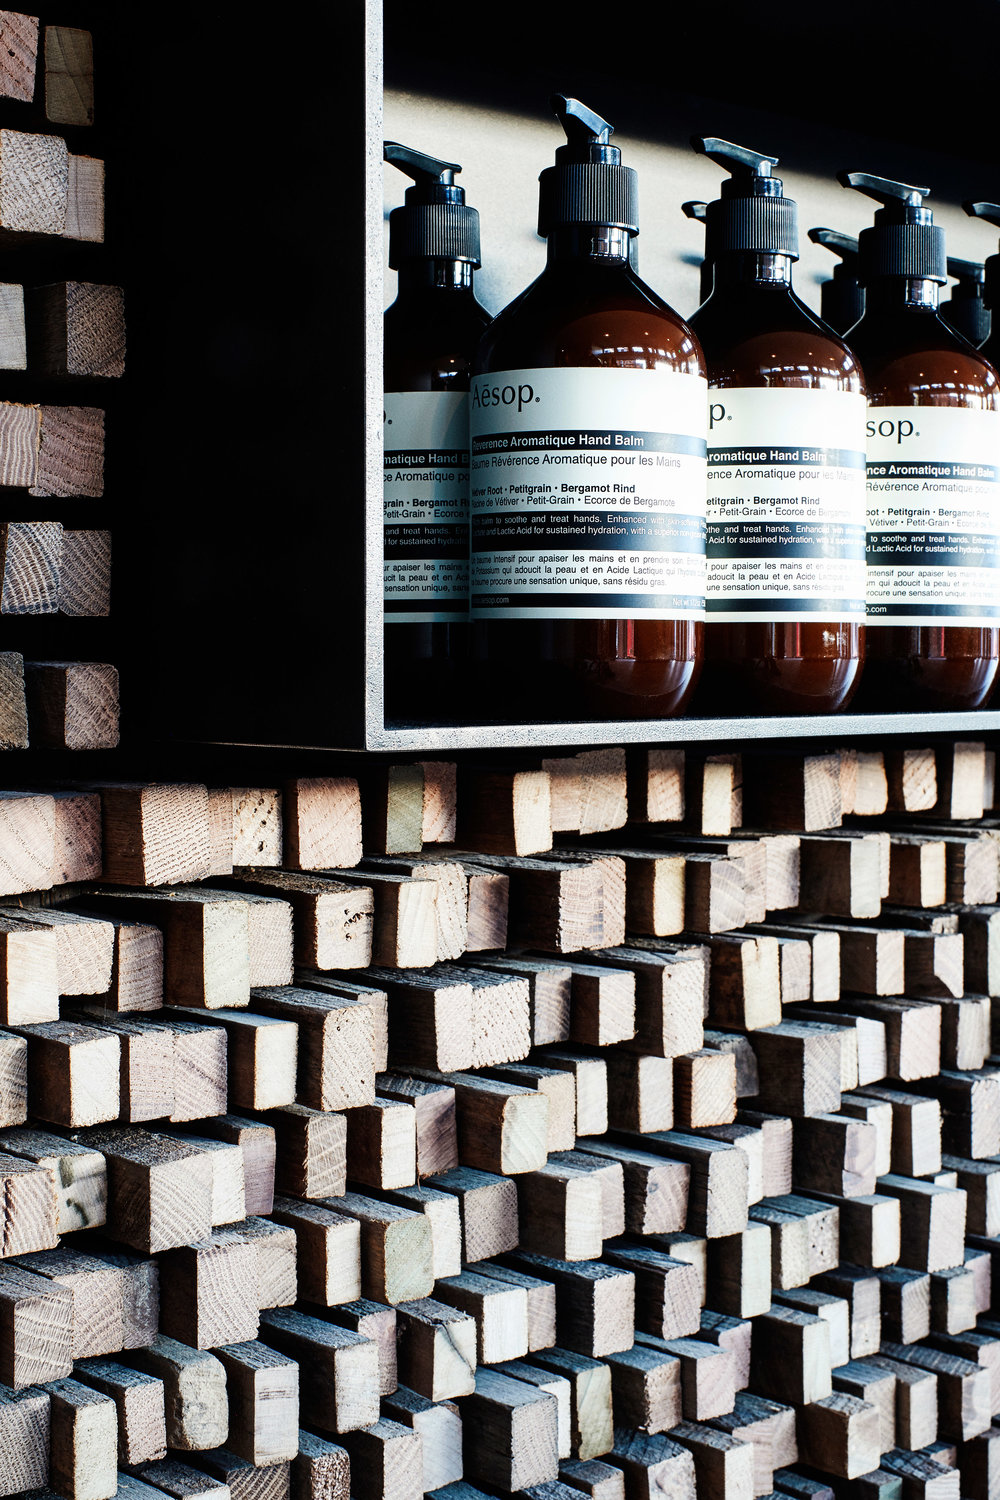 aesop-georgetown-tacklebox-architecture-interiors-washington-dc-usa_dezeen_2364_col_10.jpg